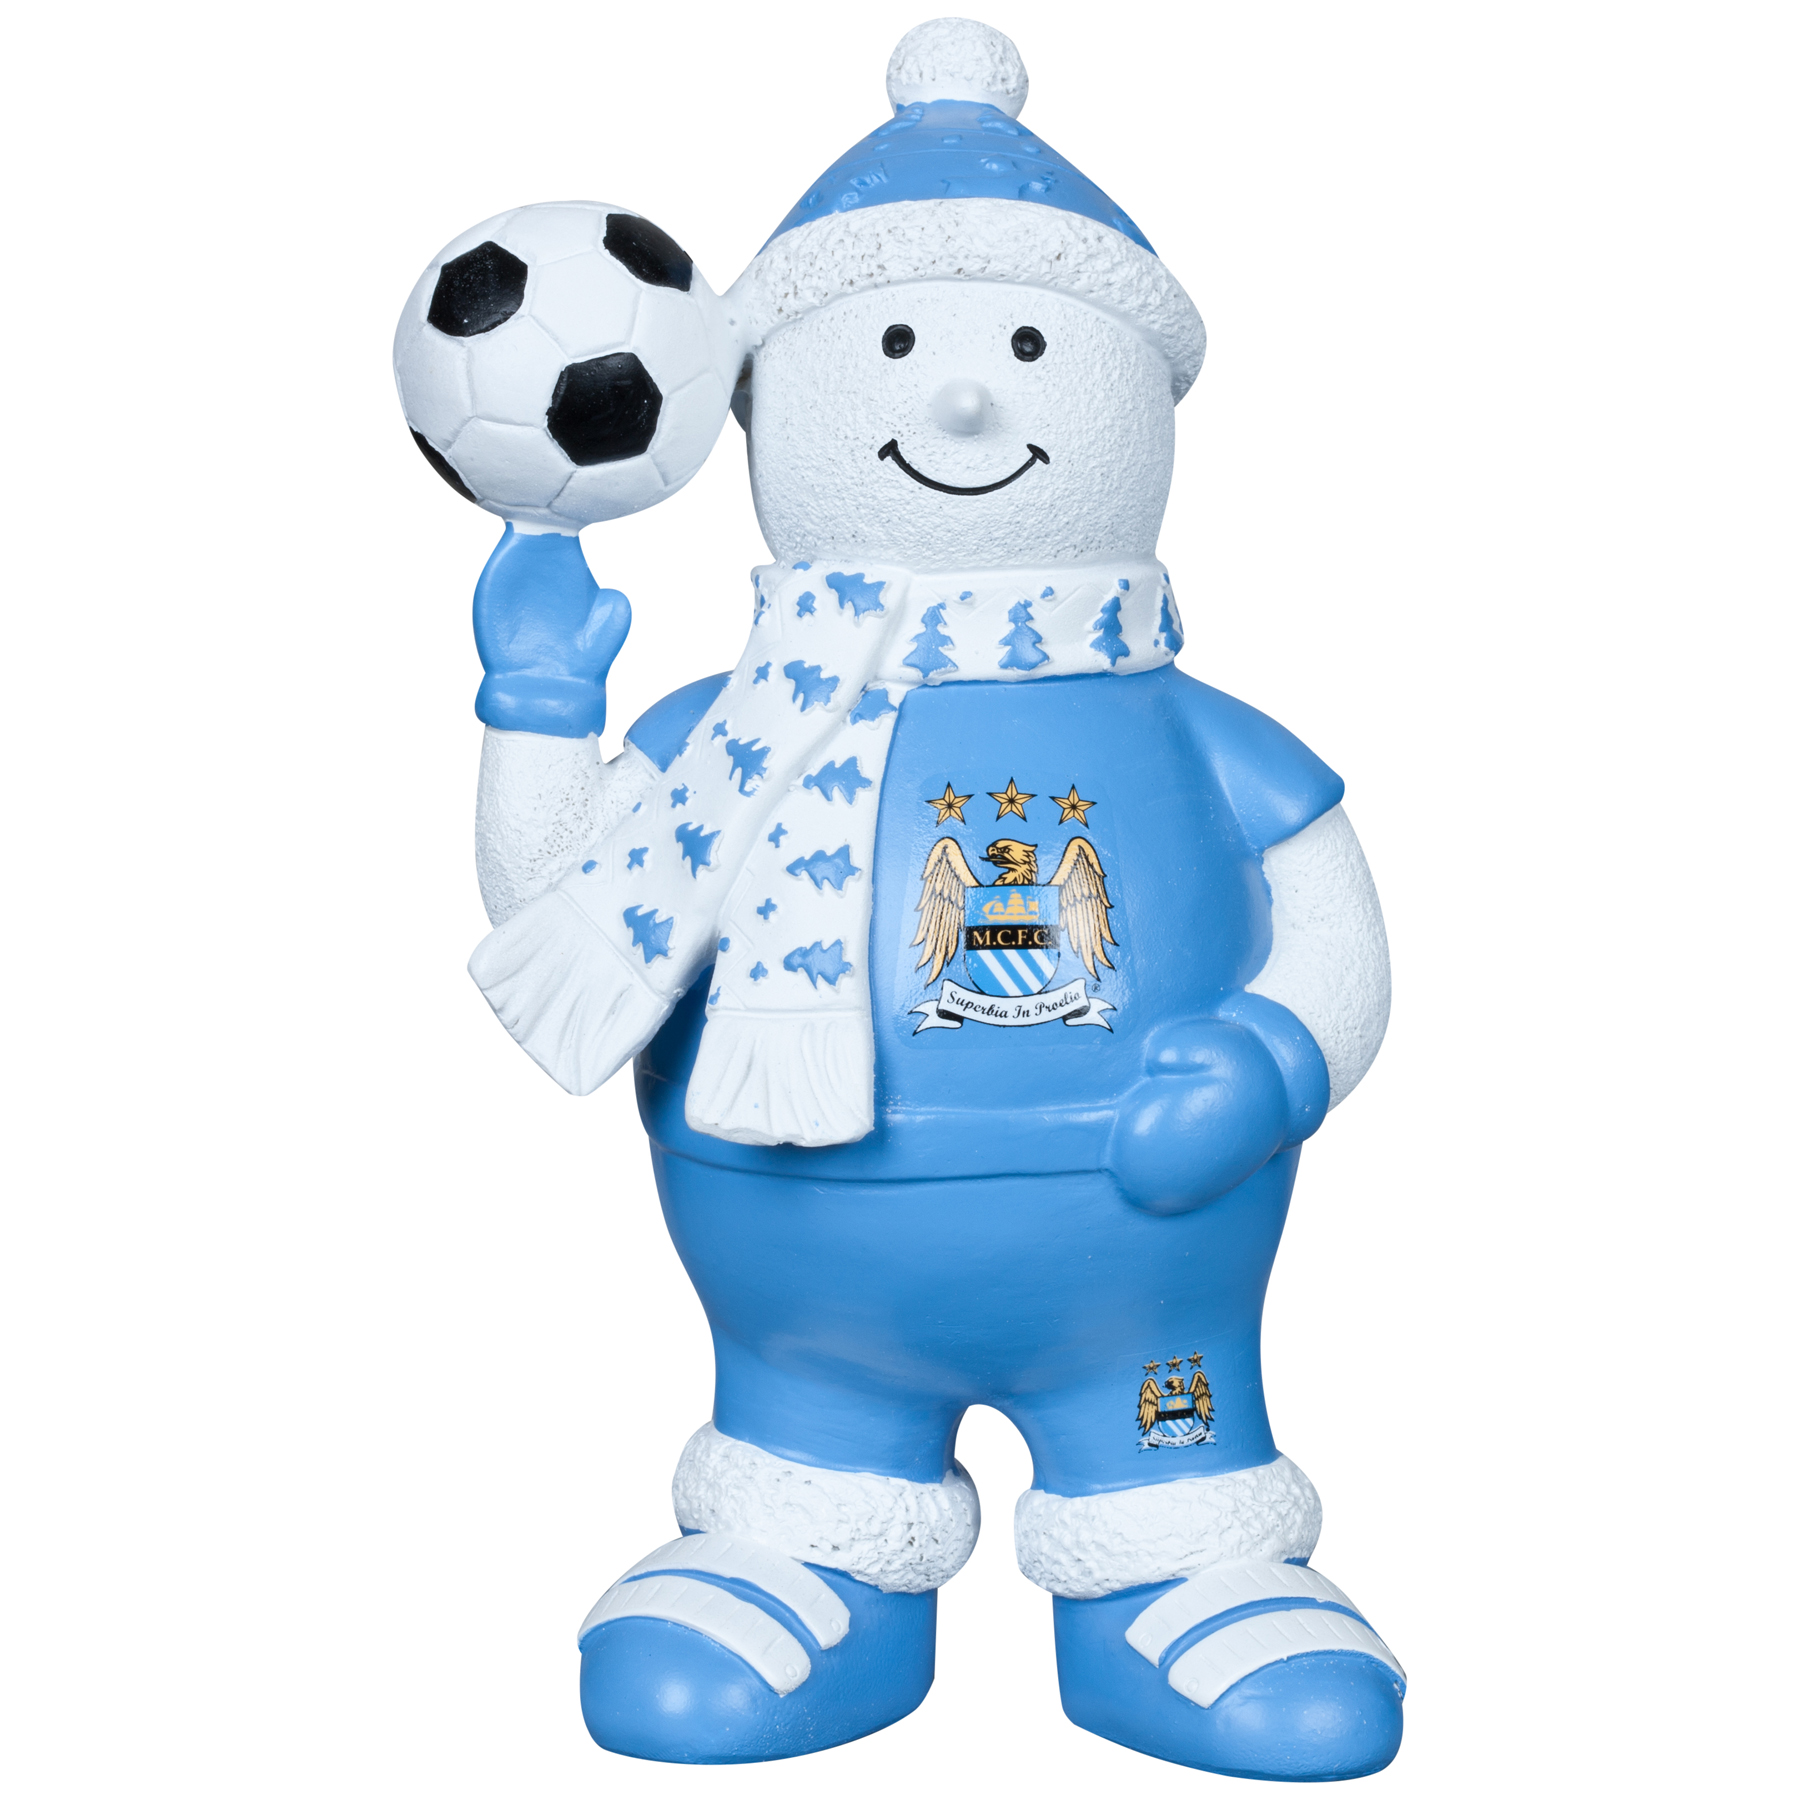 Manchester City Snowman Ornament